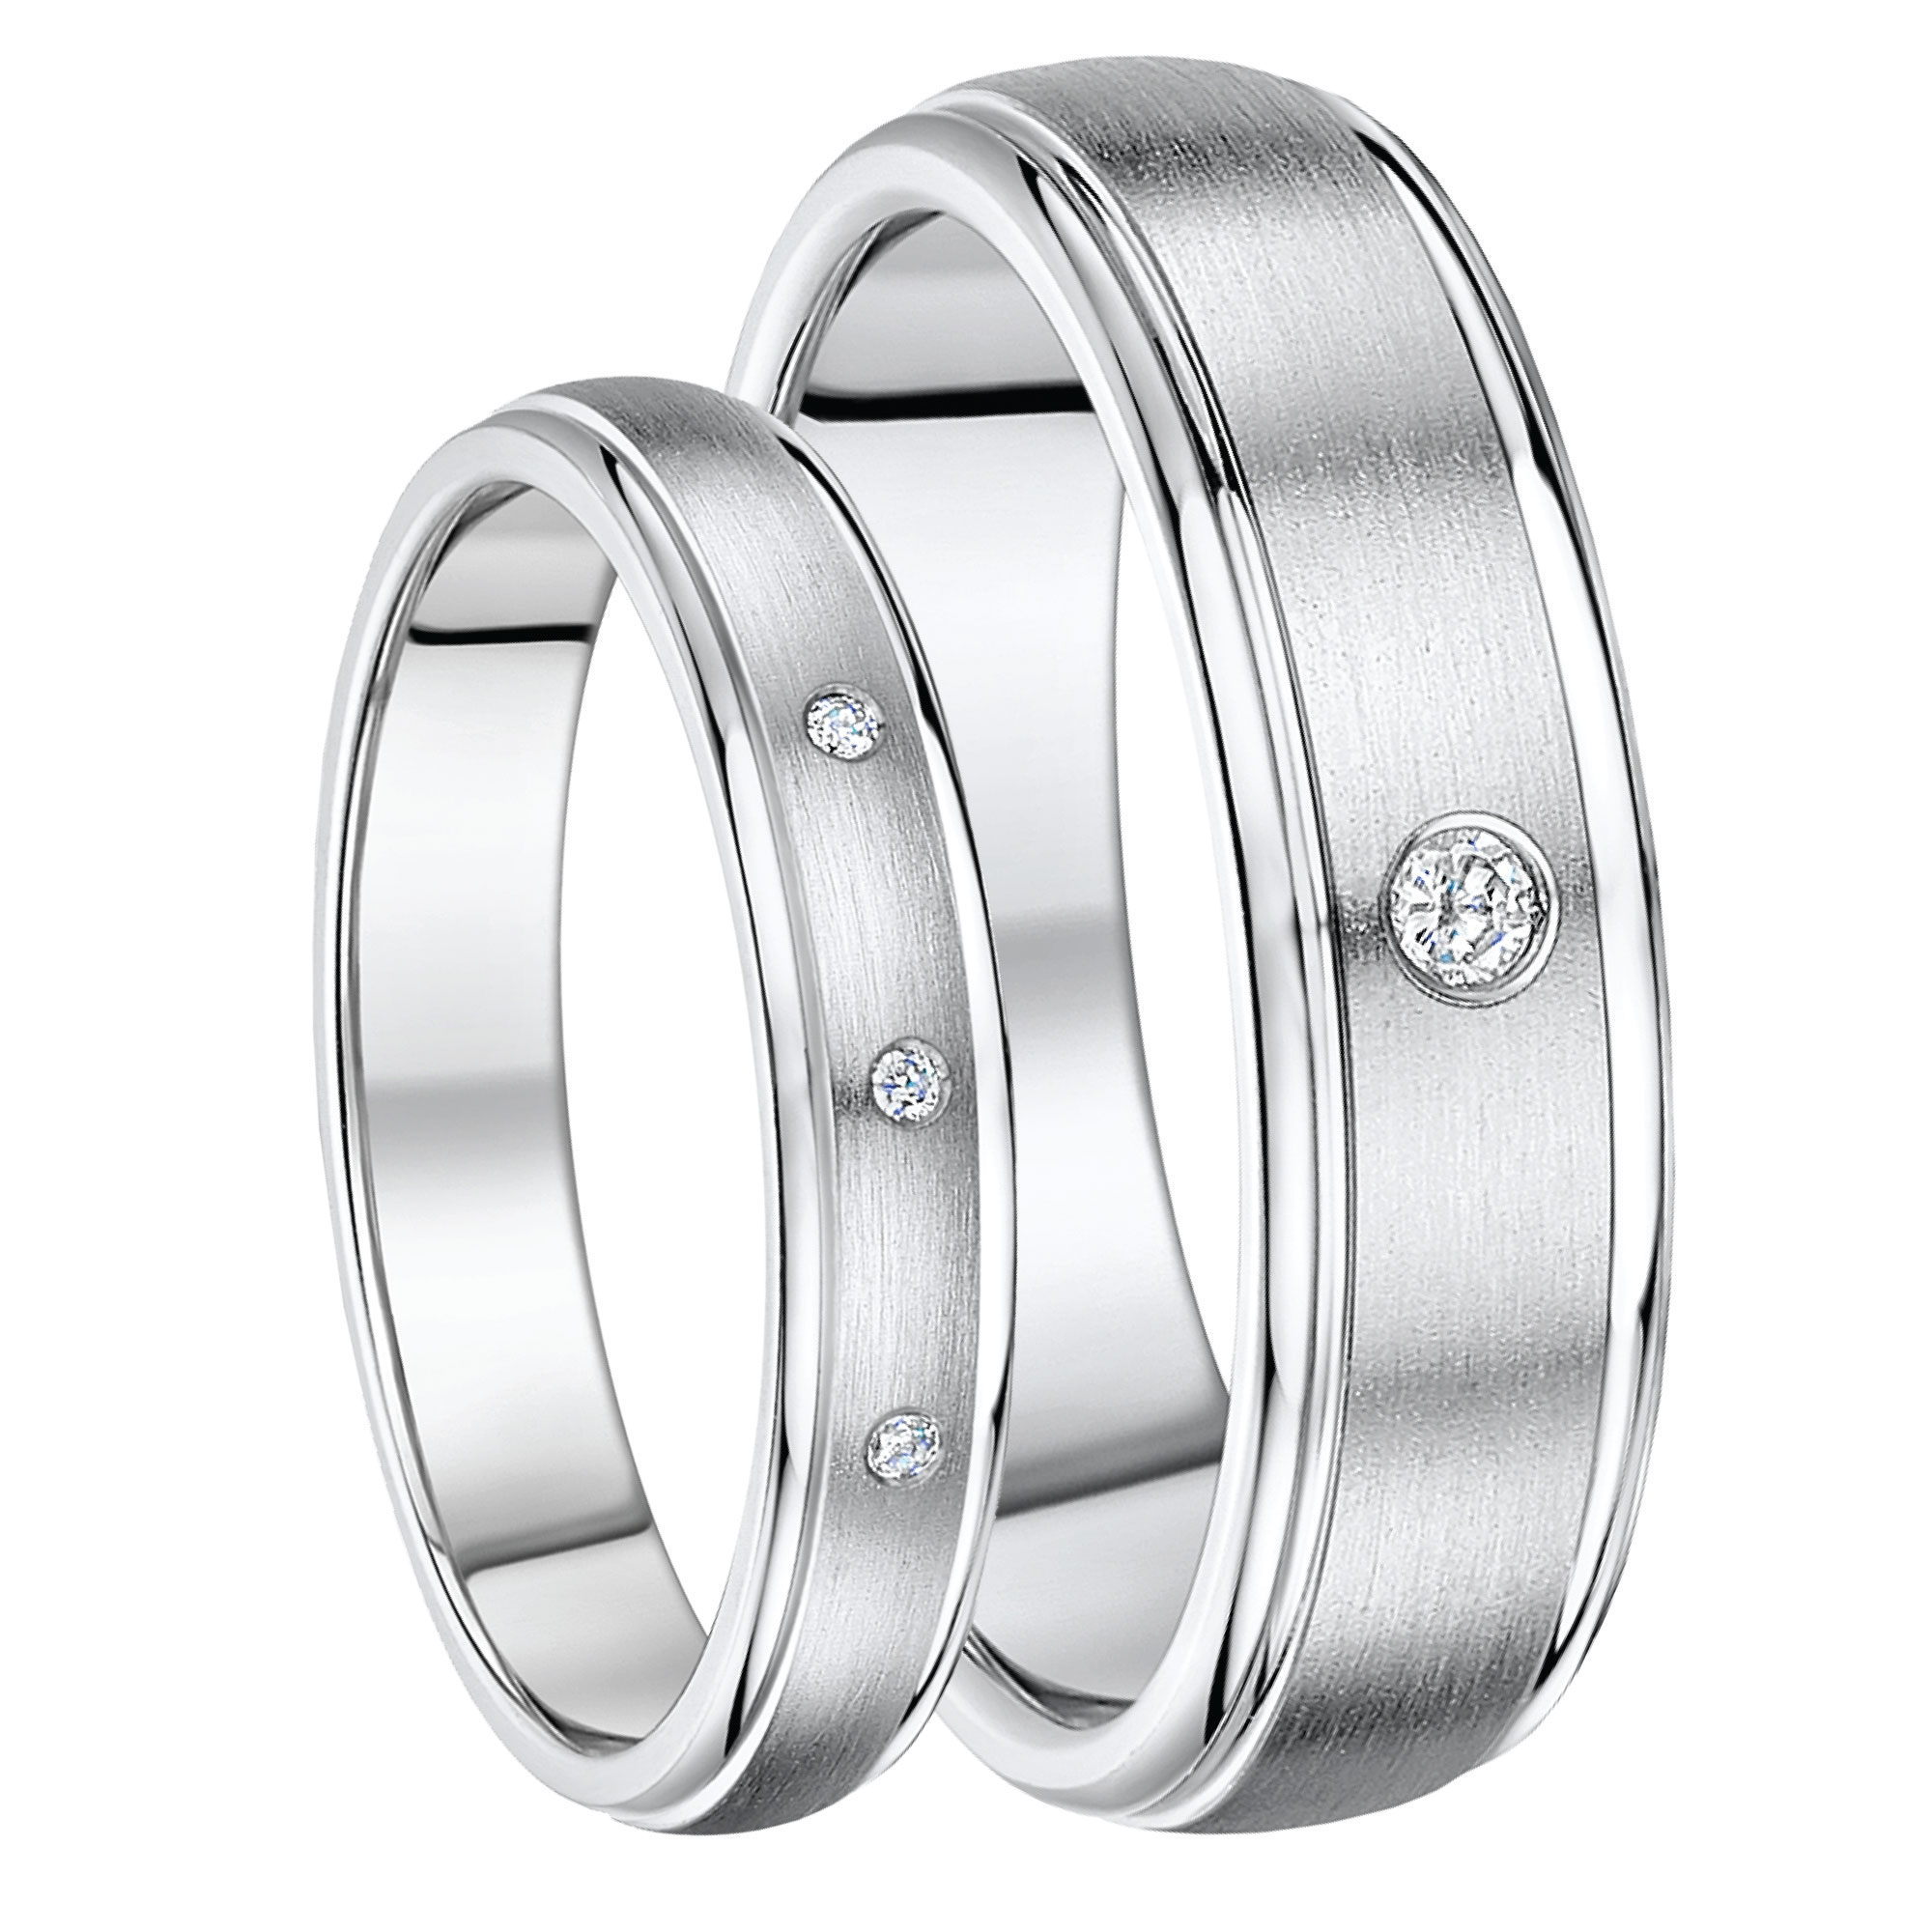 Matching Titanium Wedding Ring Sets His and Hers Titanium Diamond